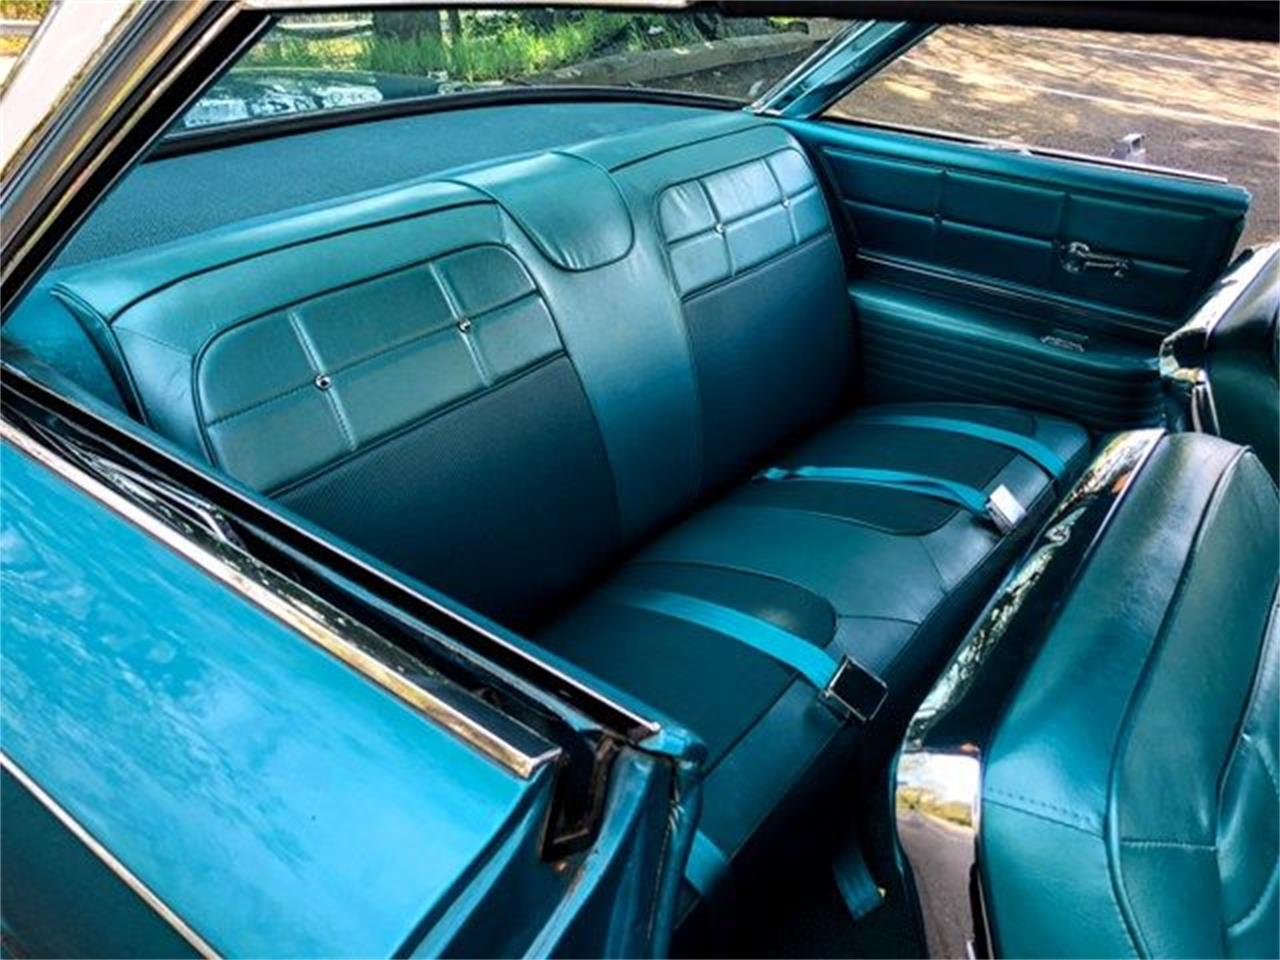 Large Picture of Classic 1961 Buick Electra located in Arlington Texas Offered by Classical Gas Enterprises - M3ZP